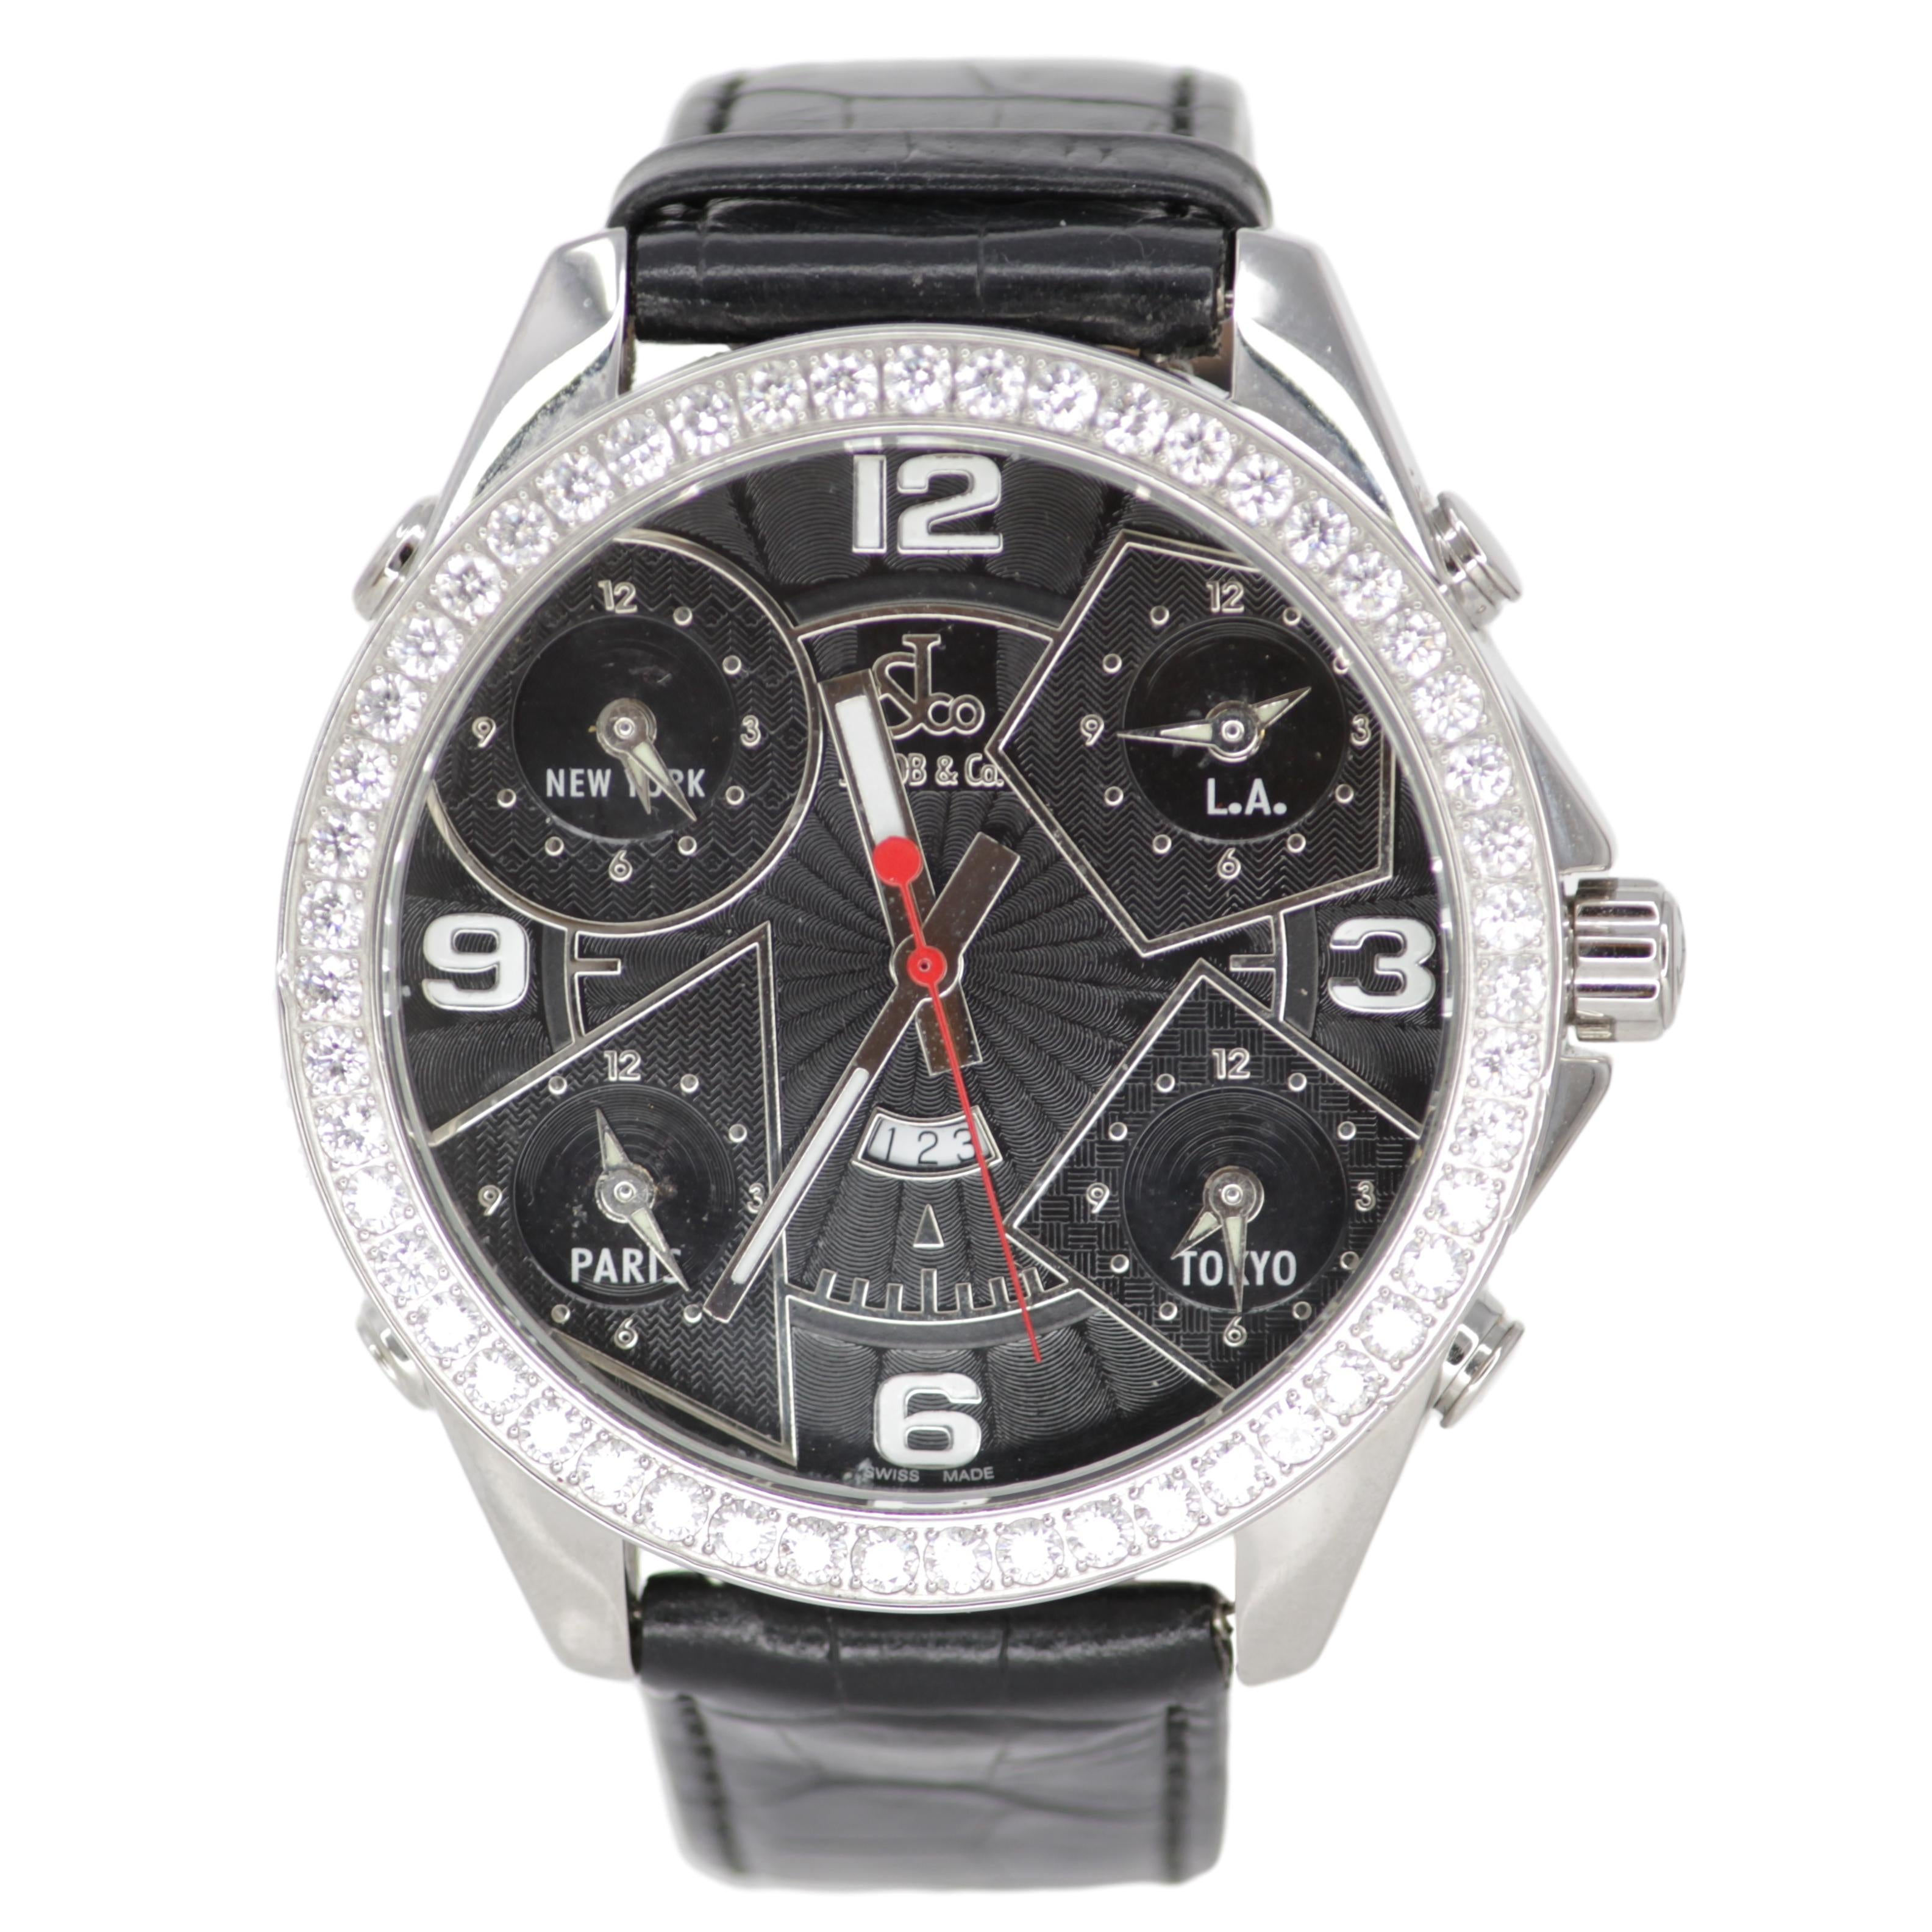 711a2e1aa7c7cd Jacob   Co. Five Times Zone Men s Watch – The Dina Collection